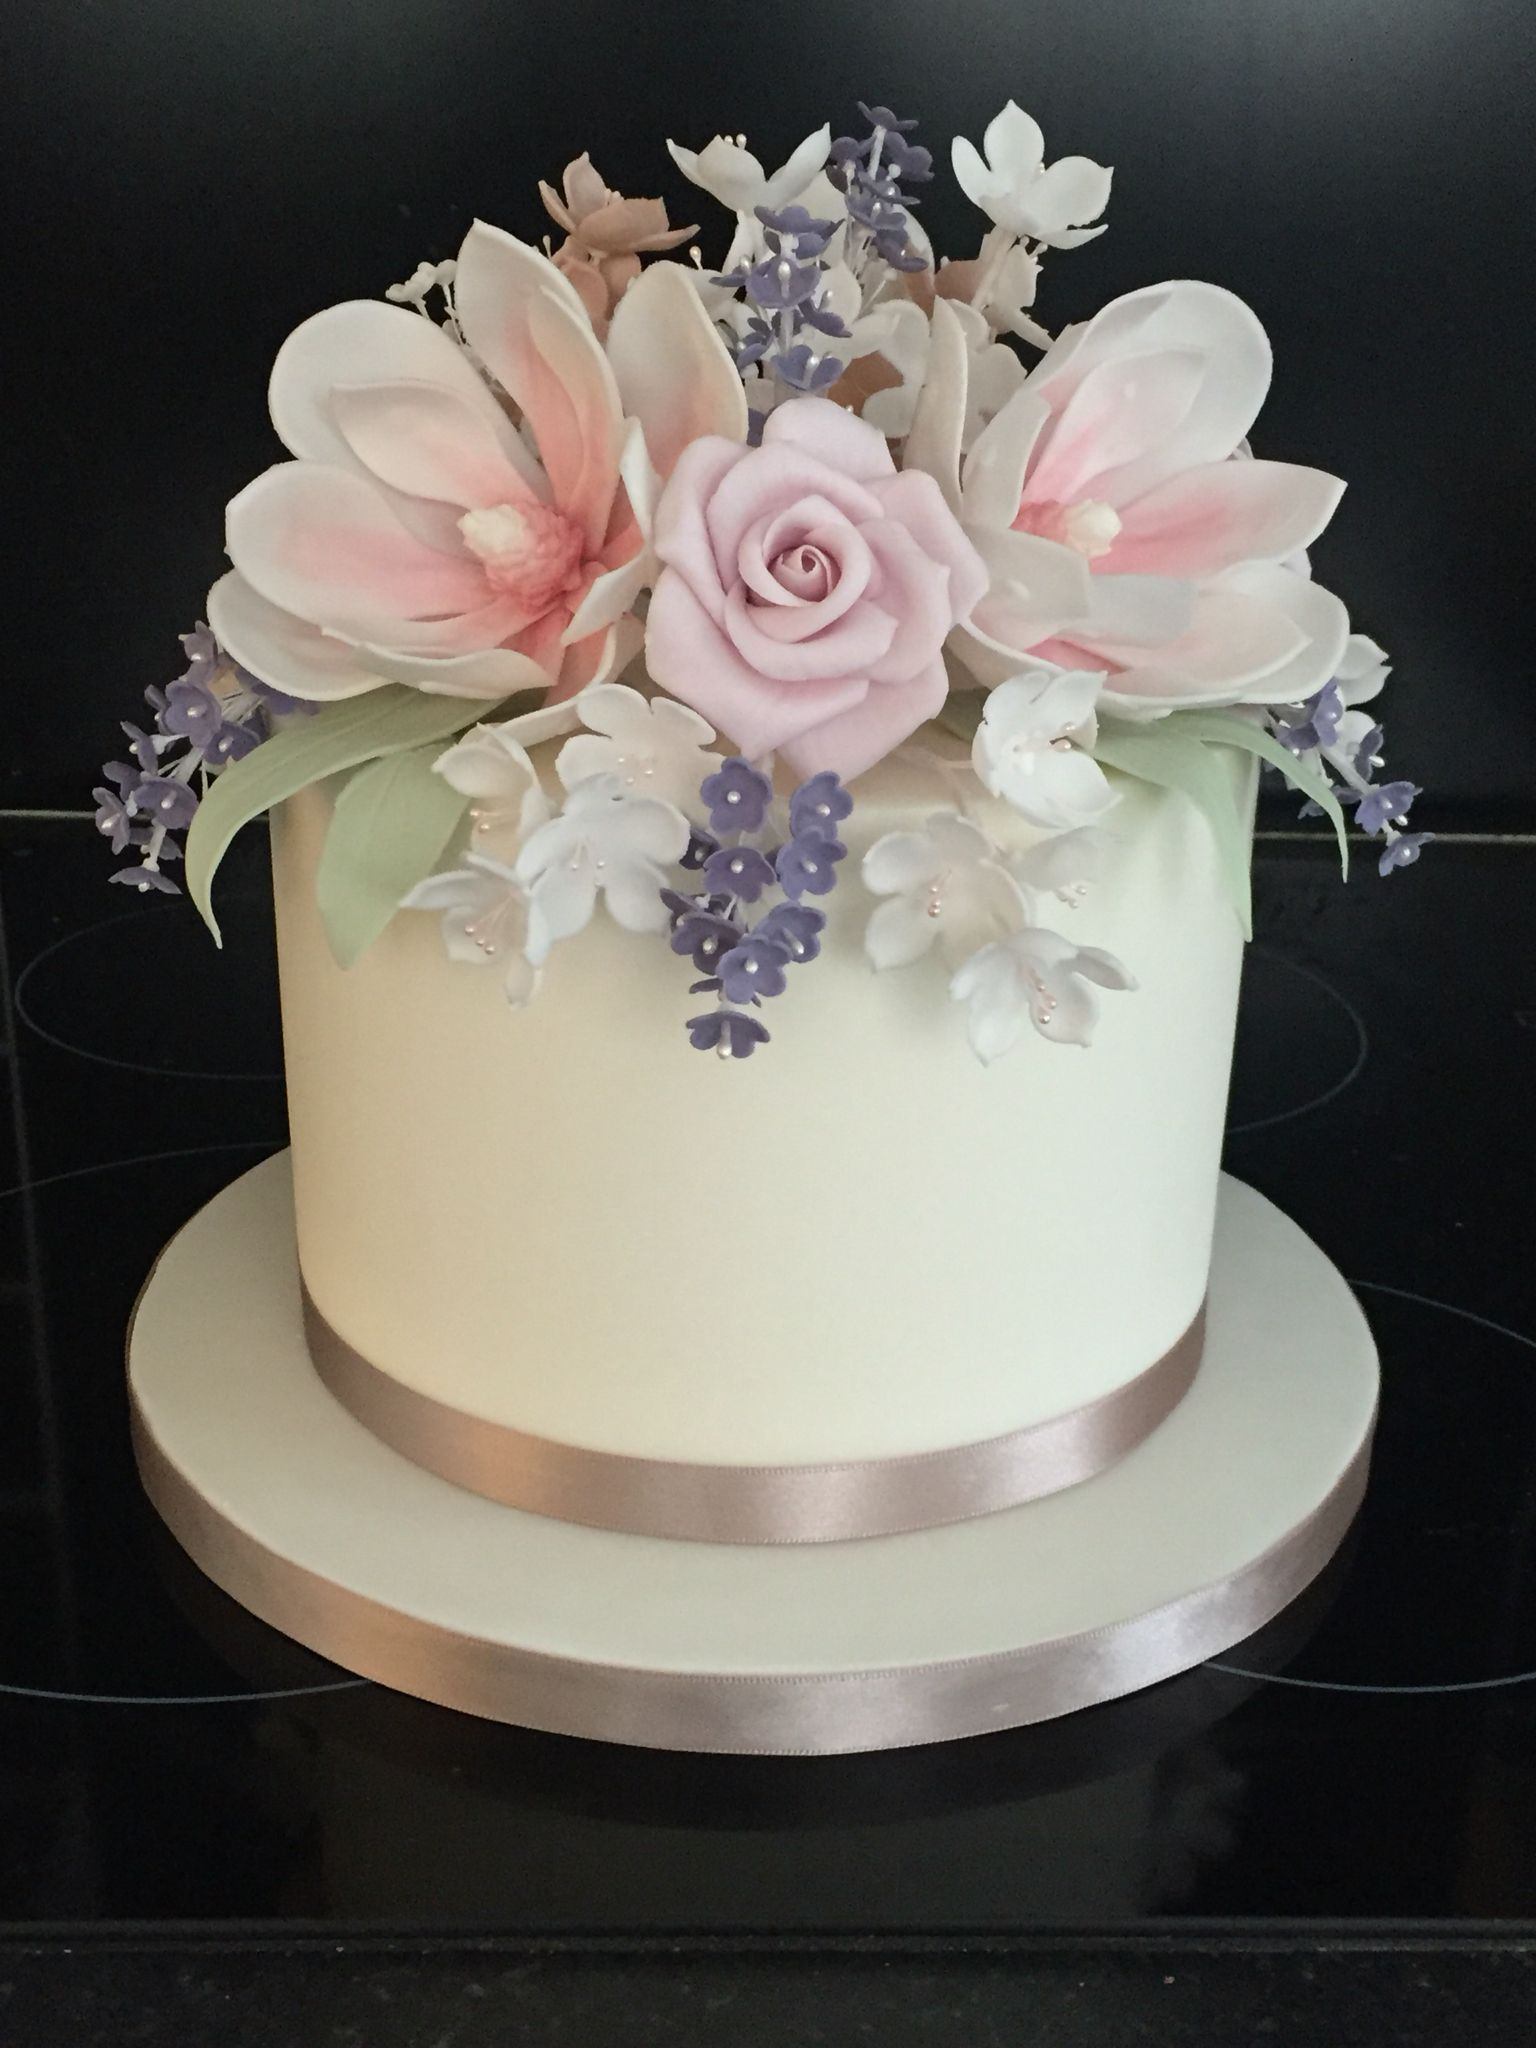 Single Tier Wedding Cake With Stunning Flowers Works Equally Well As A Top Tier By Ruby Belle Cakes Brighton Simple Wedding Cake Belle Cake Flower Cake